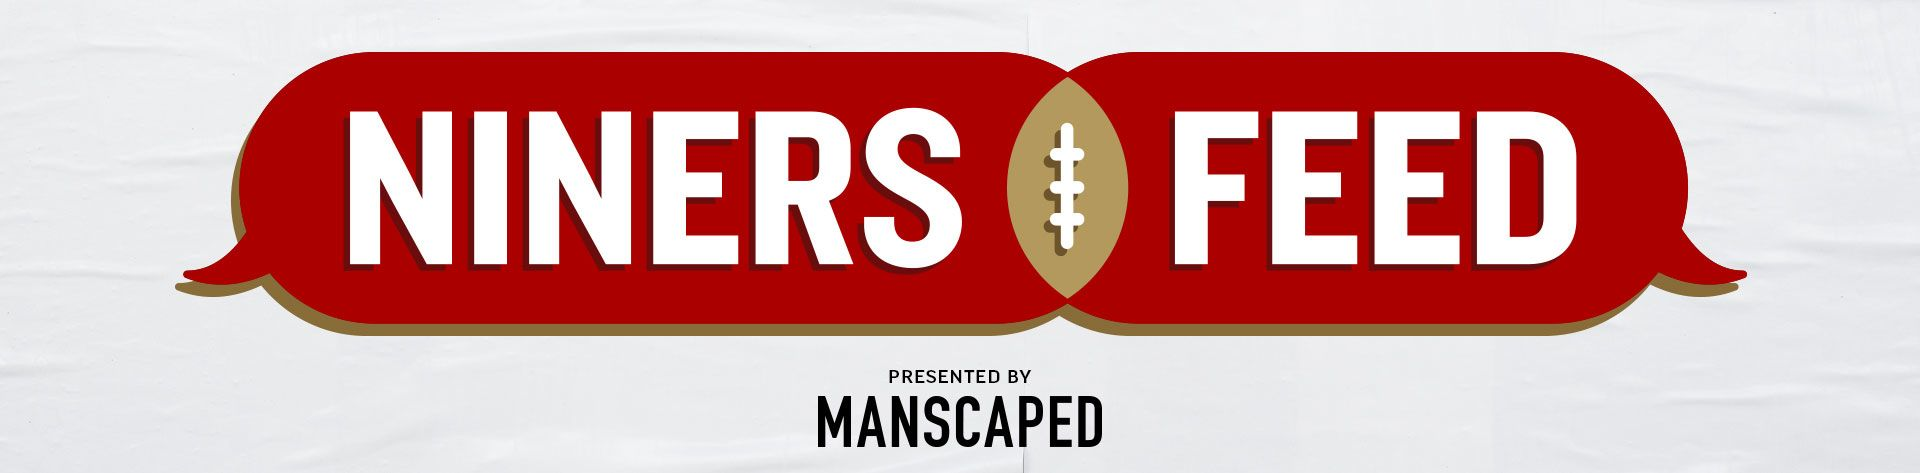 NINERS-FEED_WEB-HEADERS